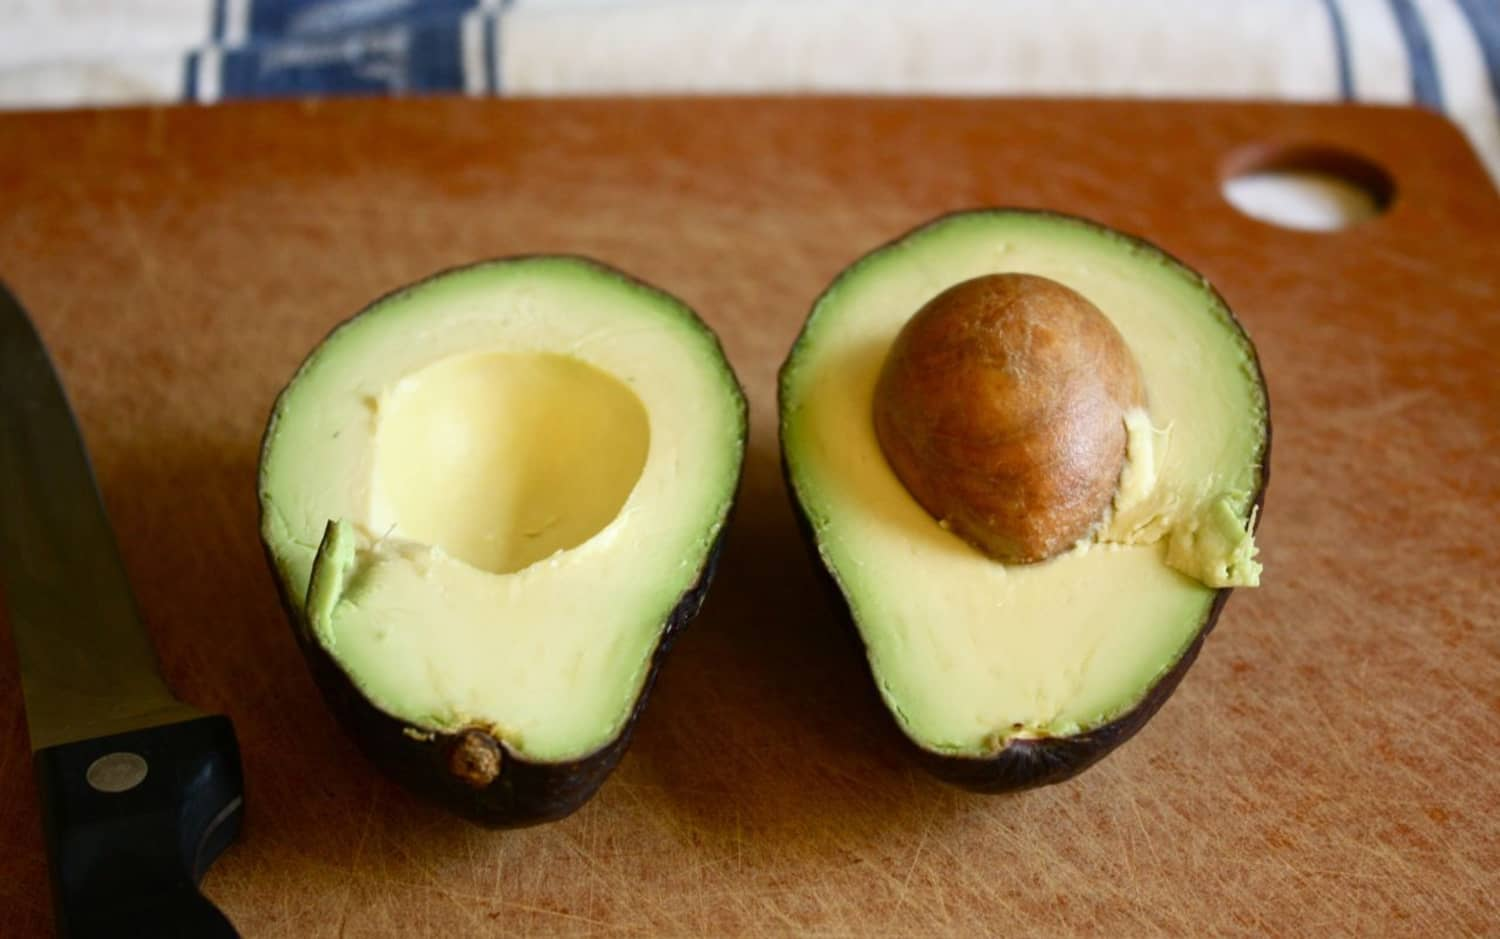 The Trick to Growing Your Own Avocado Plant